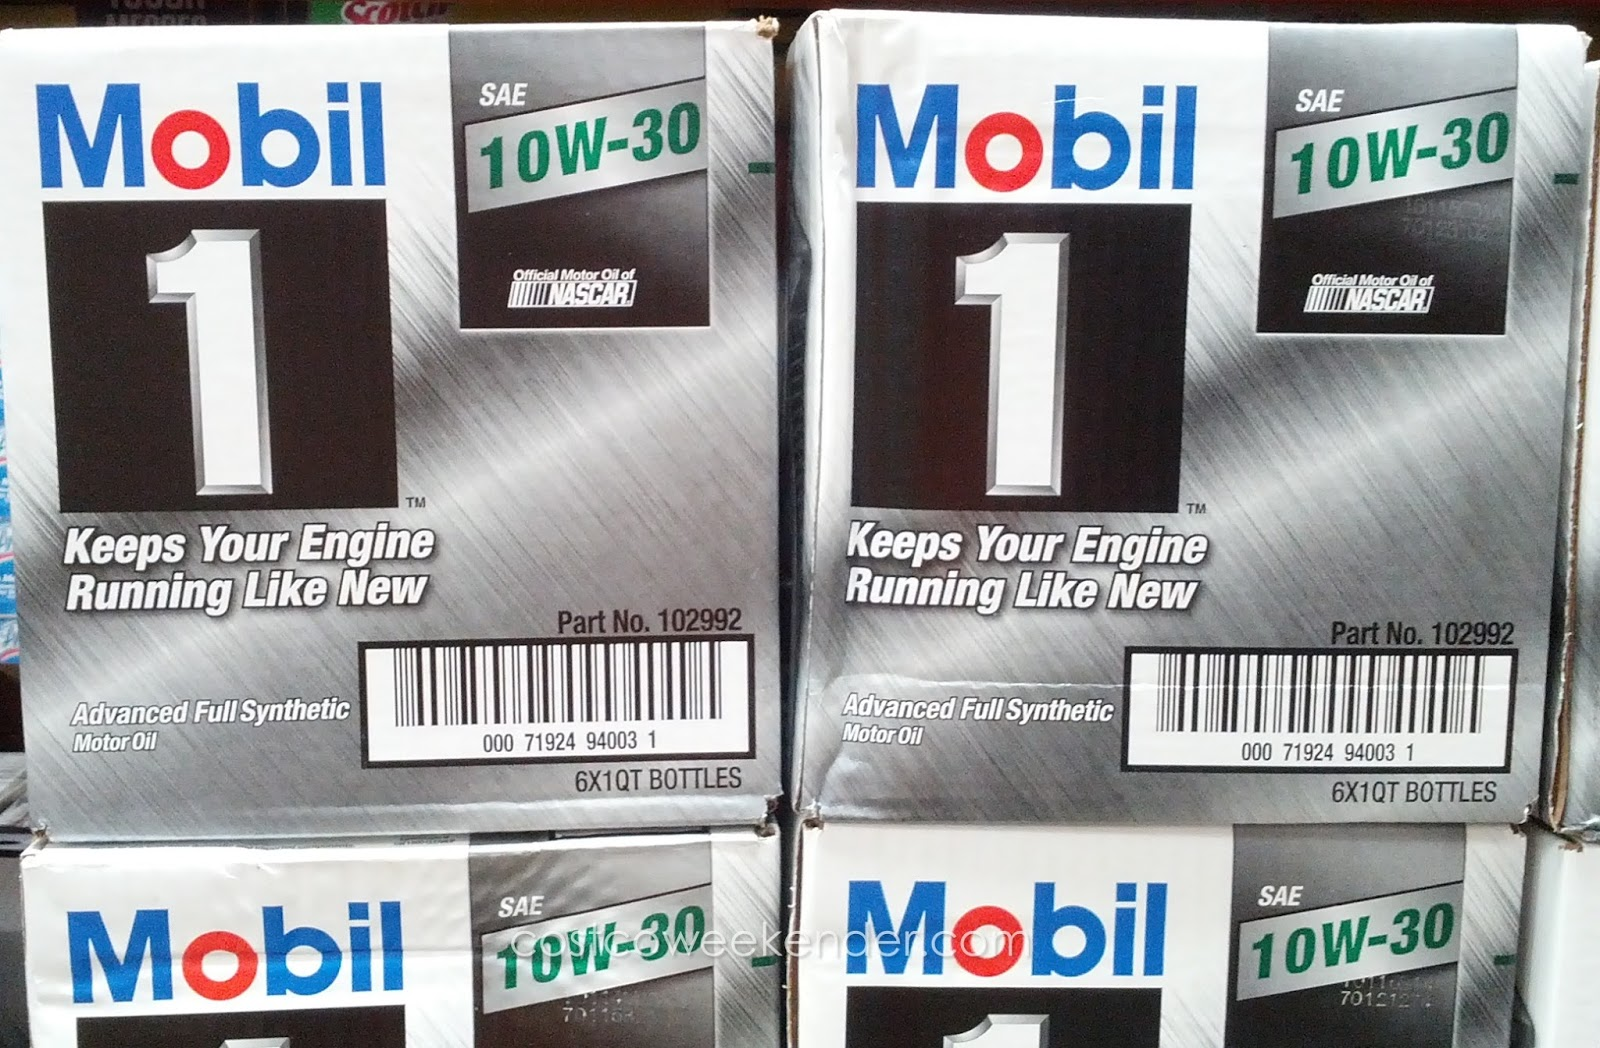 Save money and change your own car's engine oil with Mobil 1 10W-30 synthetic motor oil